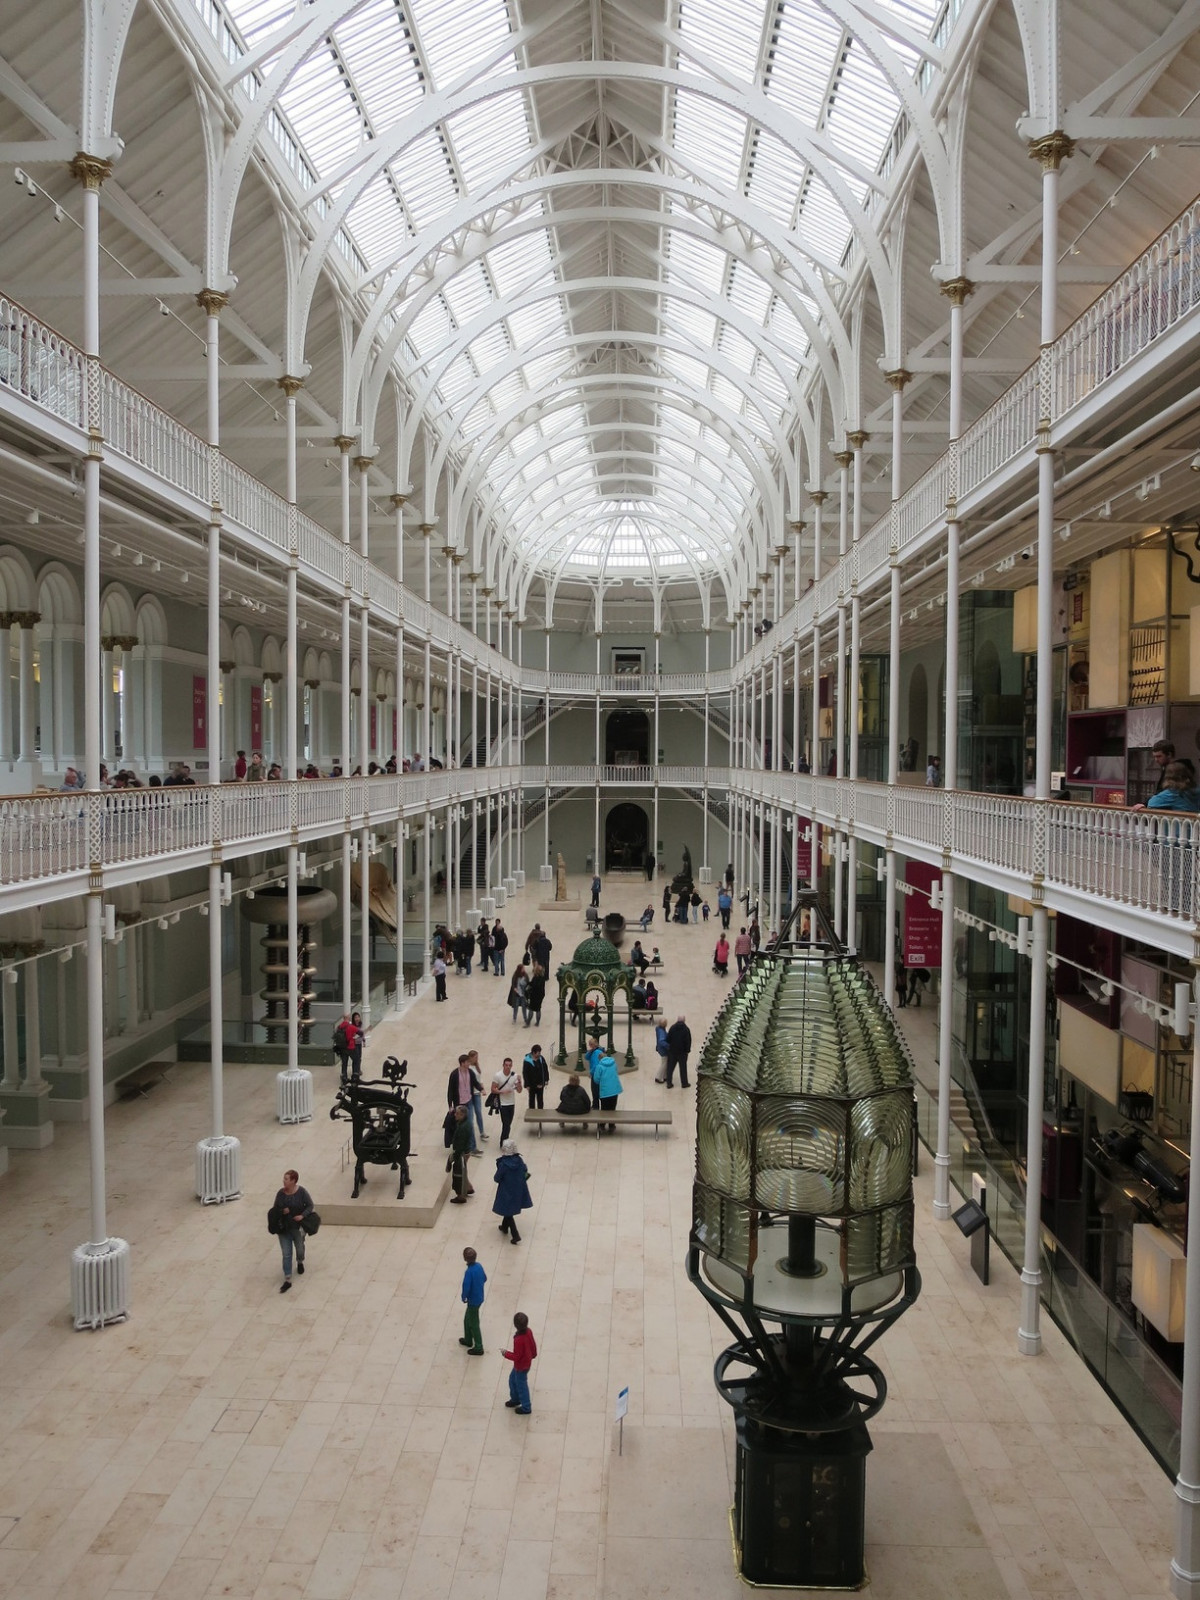 Edinburgh museum in Edinburgh